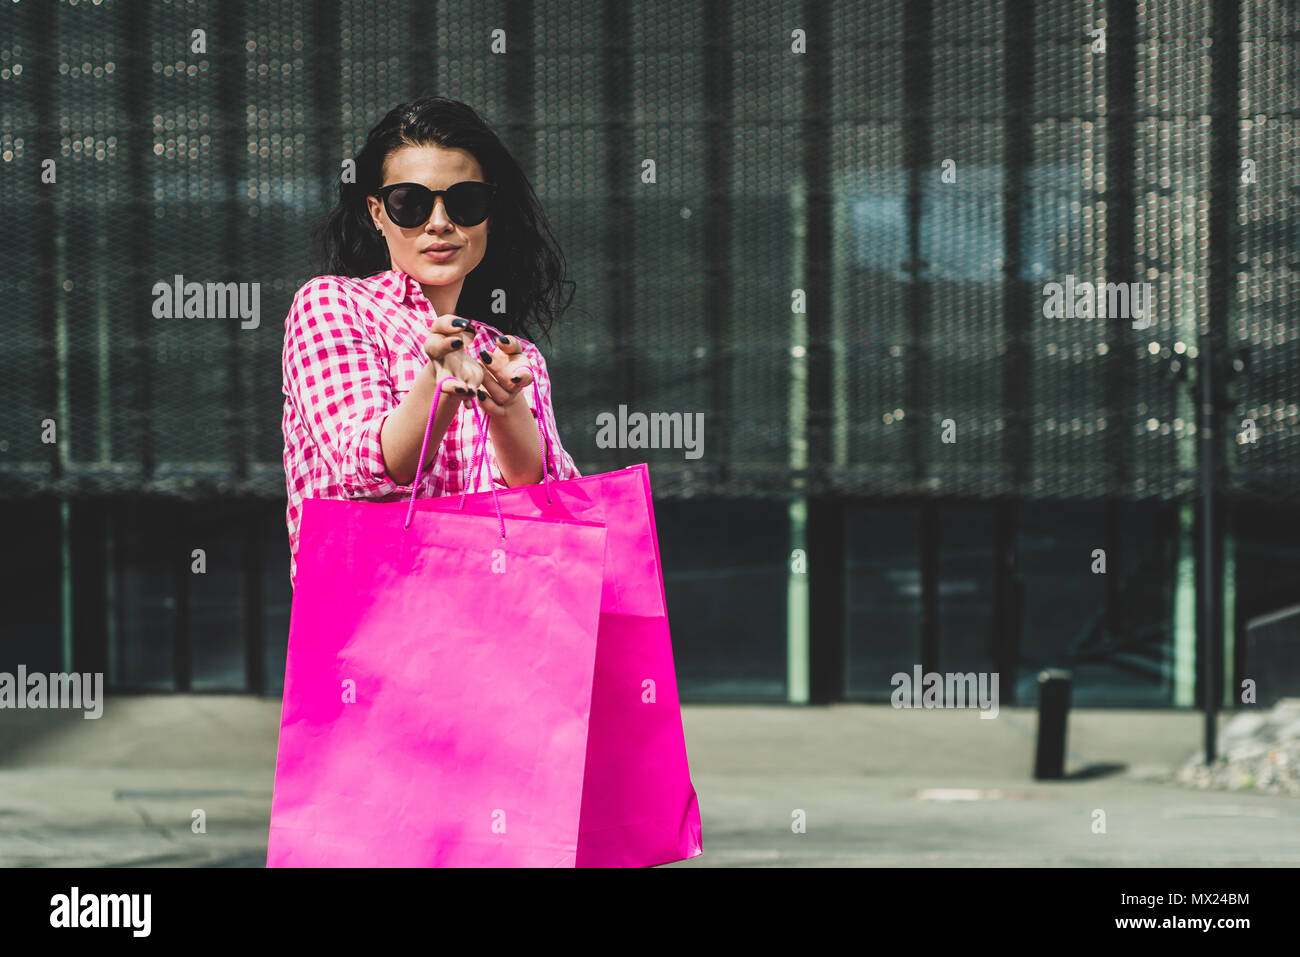 Happy and smiling girl enjoys shopping. Shopping concept. A young woman is satisfied with the things she bought. Female Walks or sit with Bags Full of - Stock Image